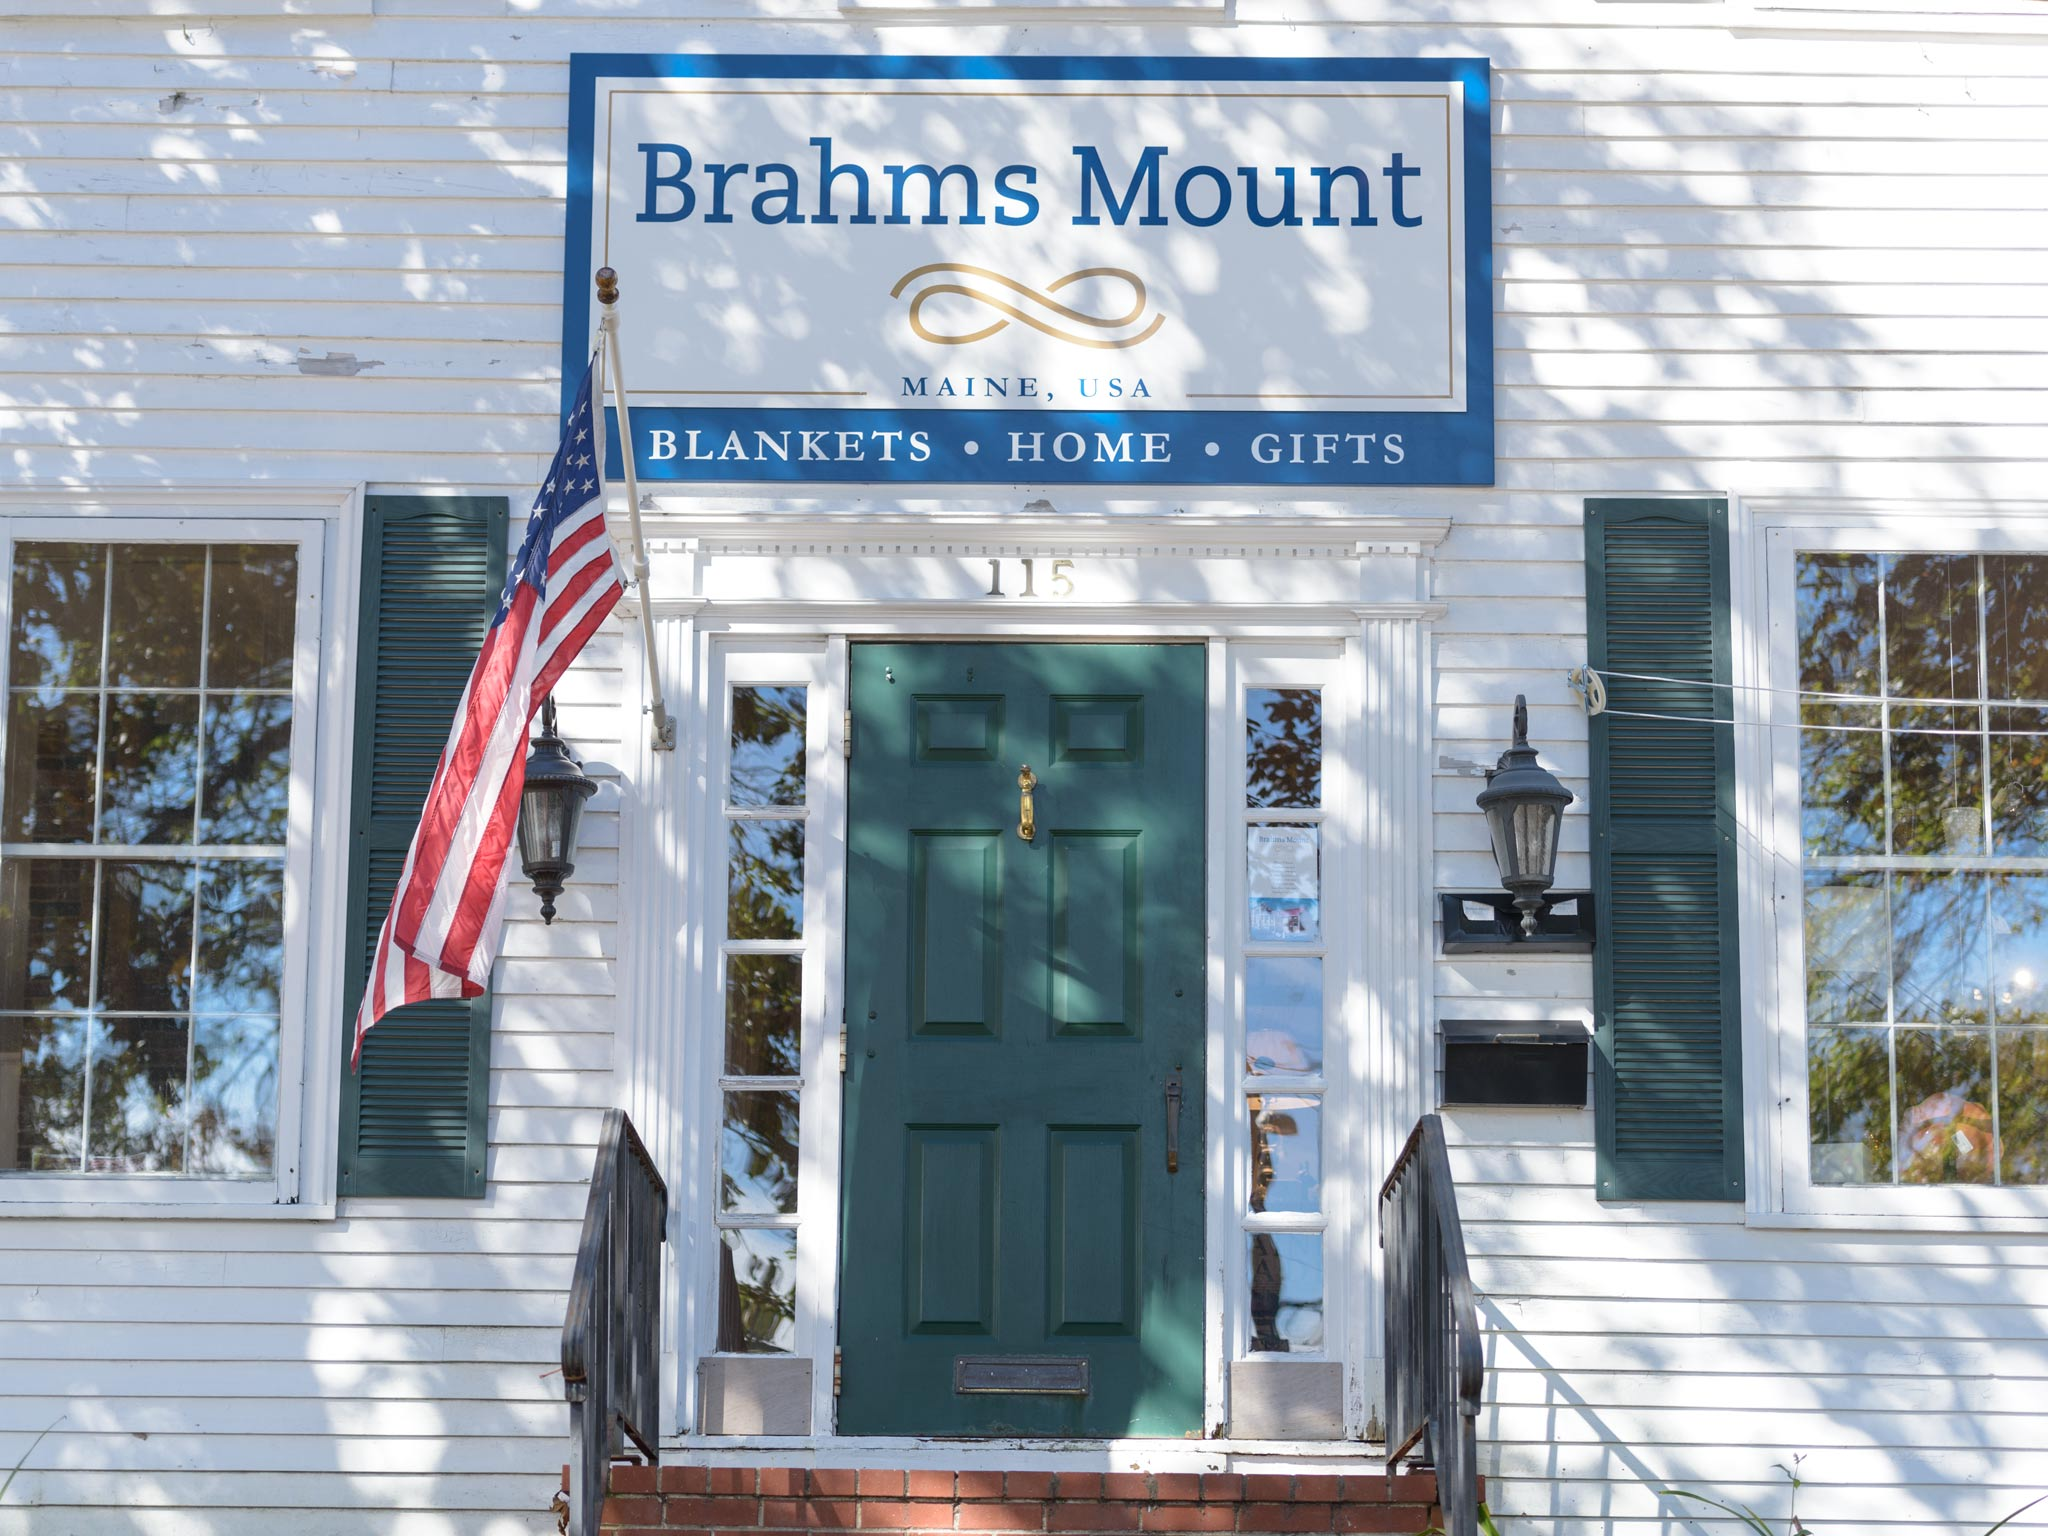 The Brahms Mount retail store is located in Freeport Maine in a building built in 1779 that used to be an Inn